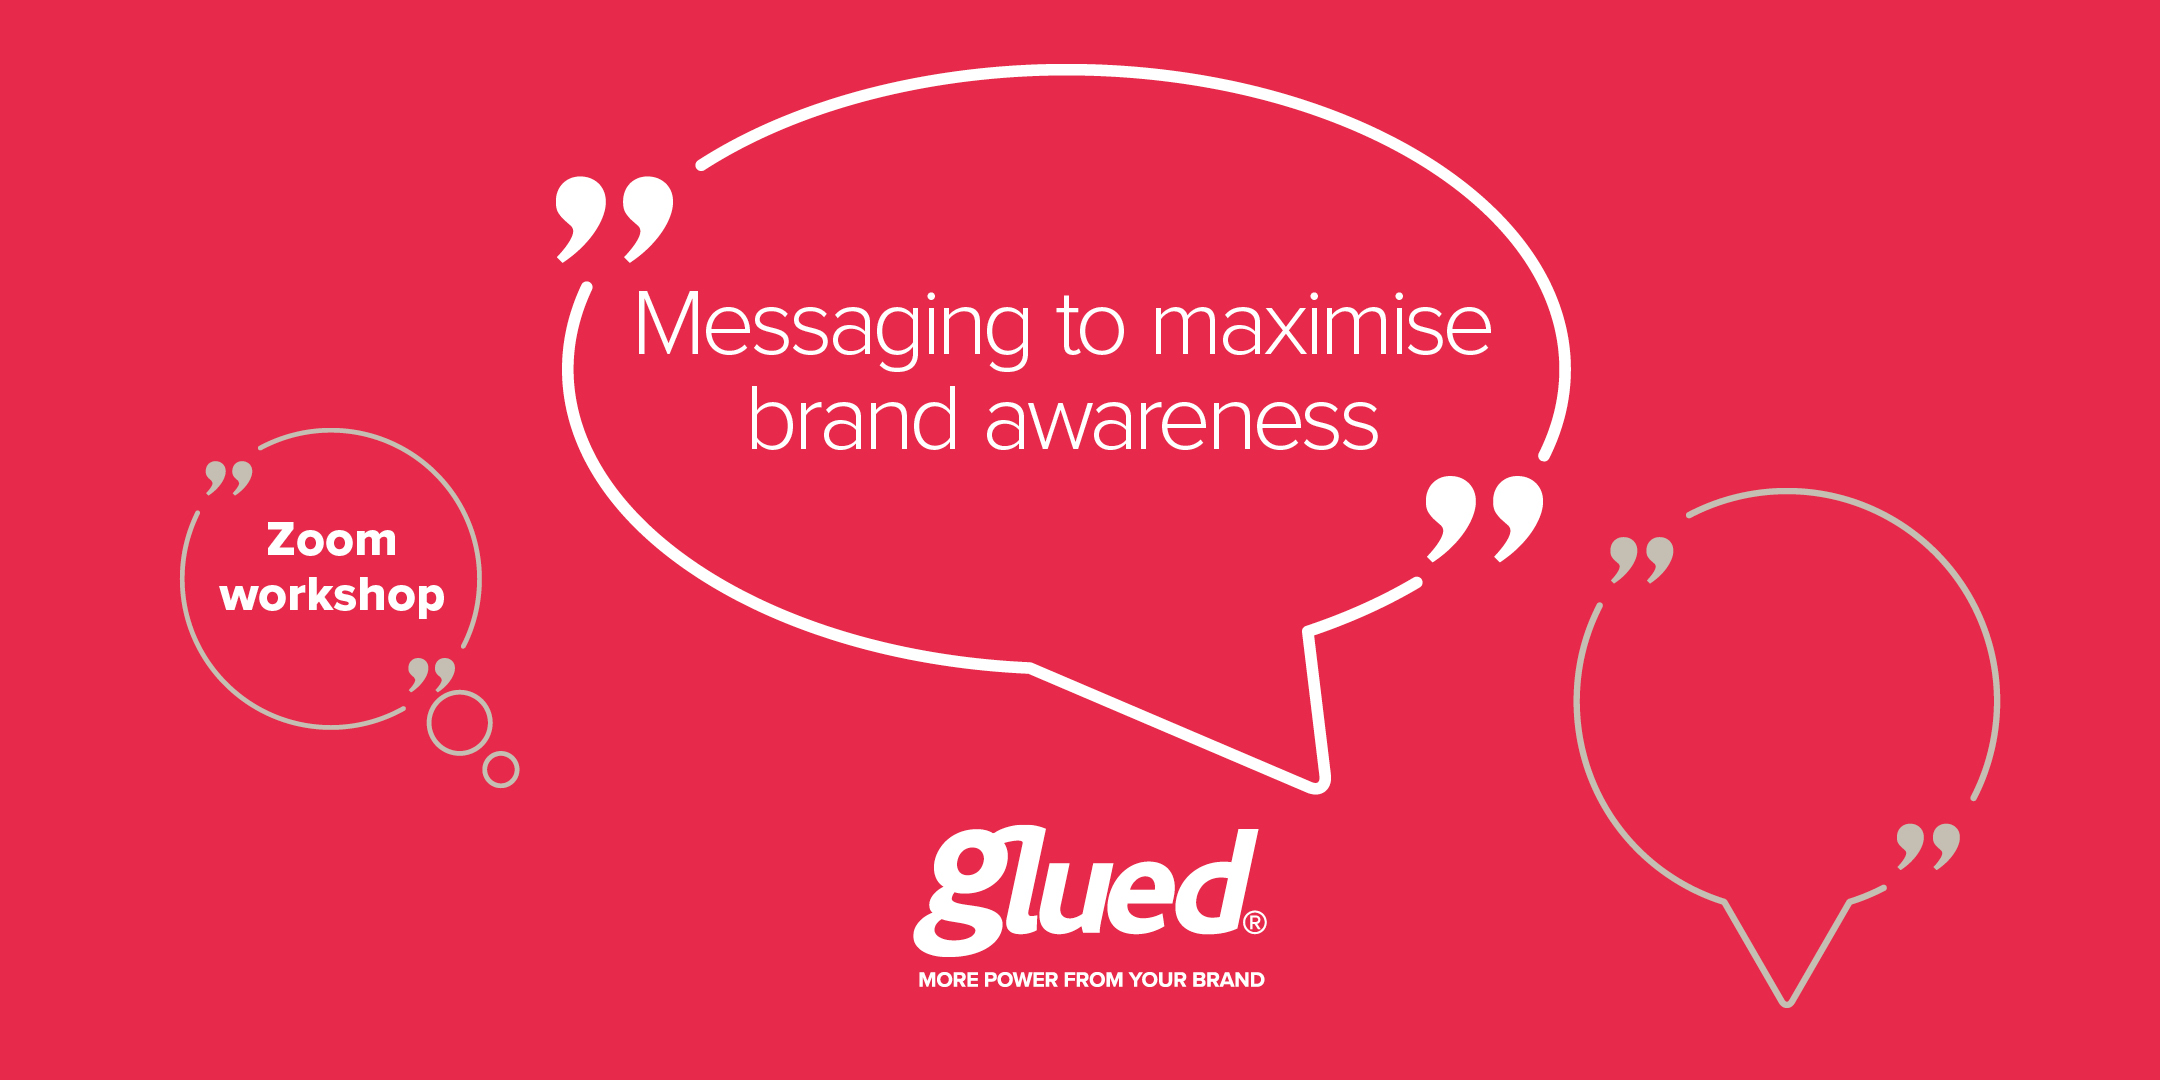 Messaging to maximise brand awareness